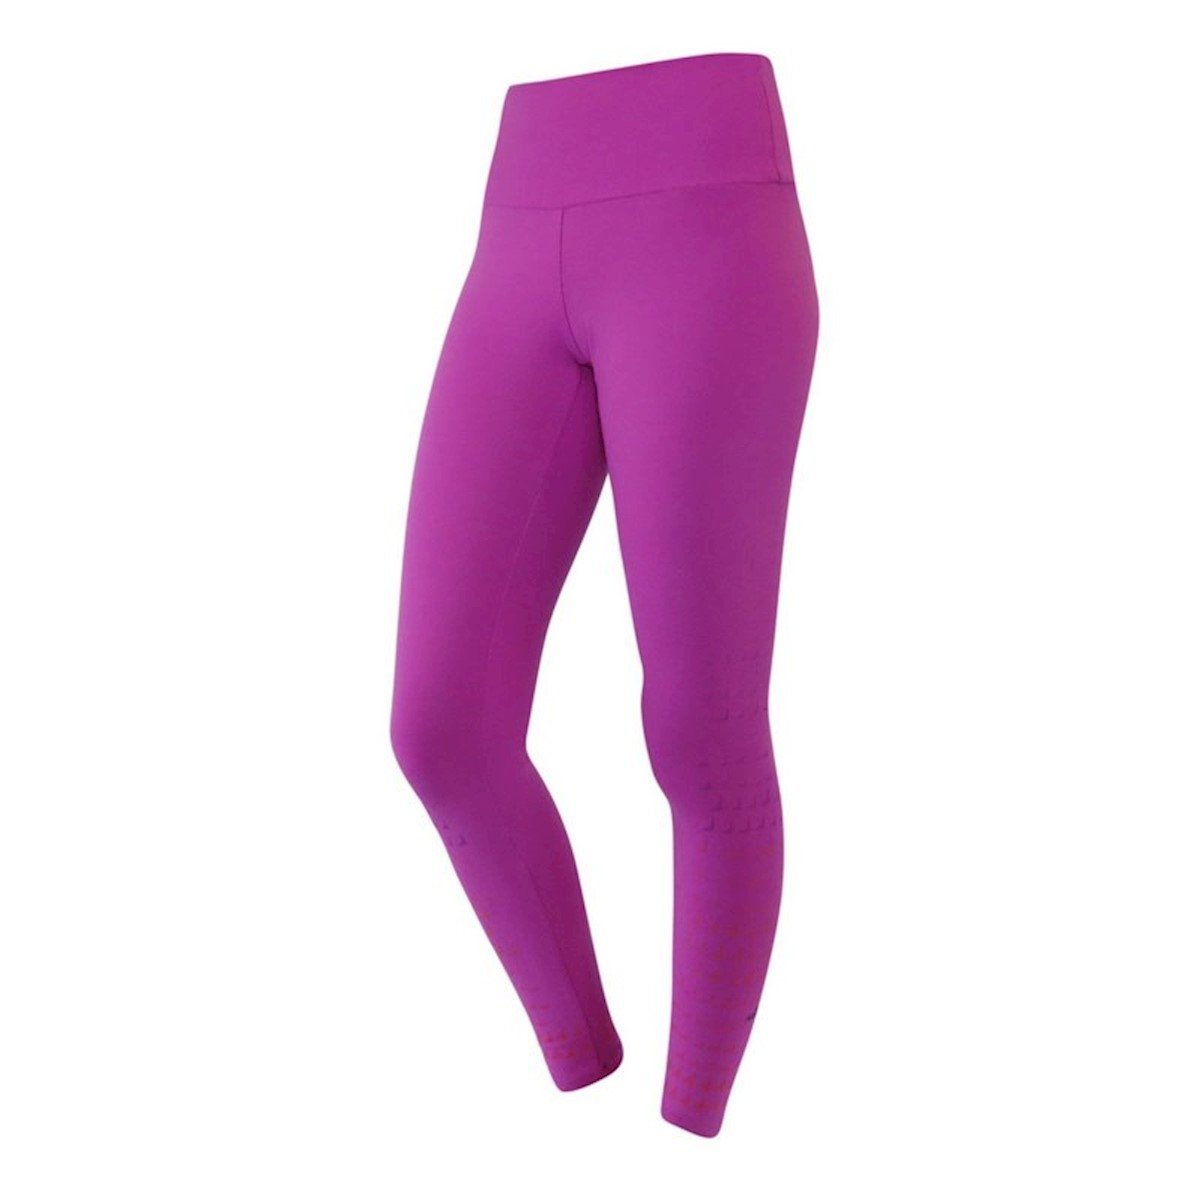 Legging Alto Rosa Fit Feminina Supplex Silk Giro Supplex Legging rwTUOr